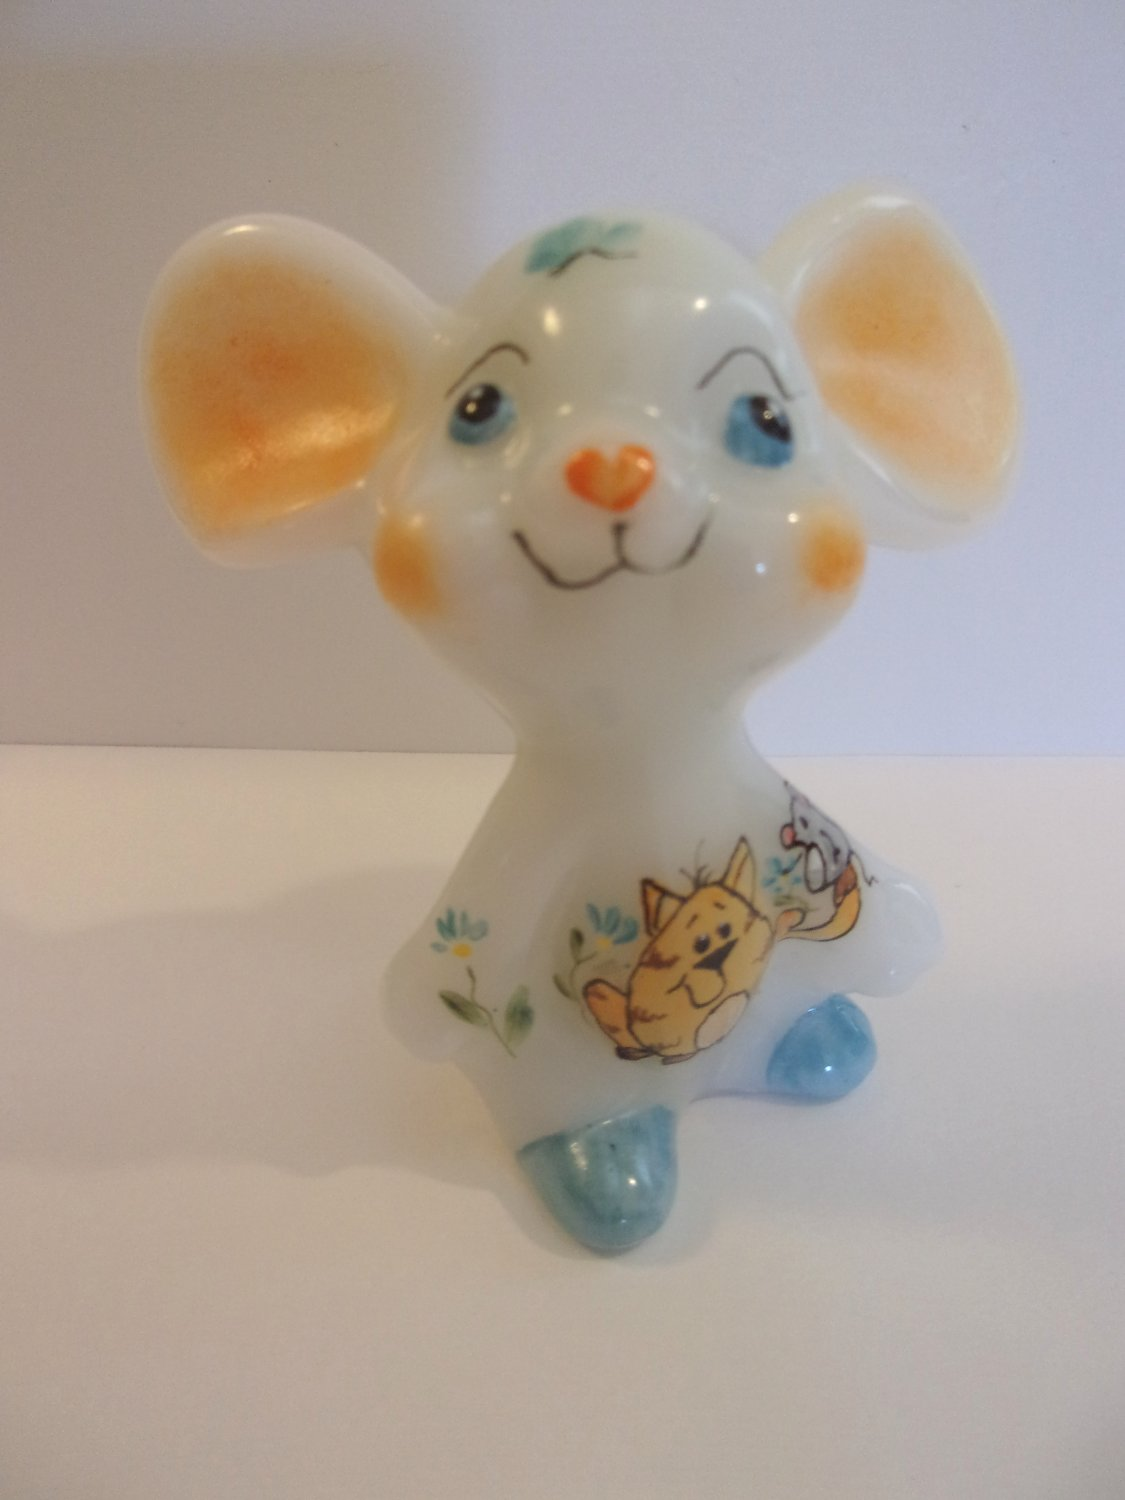 Fenton Glass Mouse Figurine w Tabby Cats Ltd Ed of 25 by TG Mendenhall for FAGCA